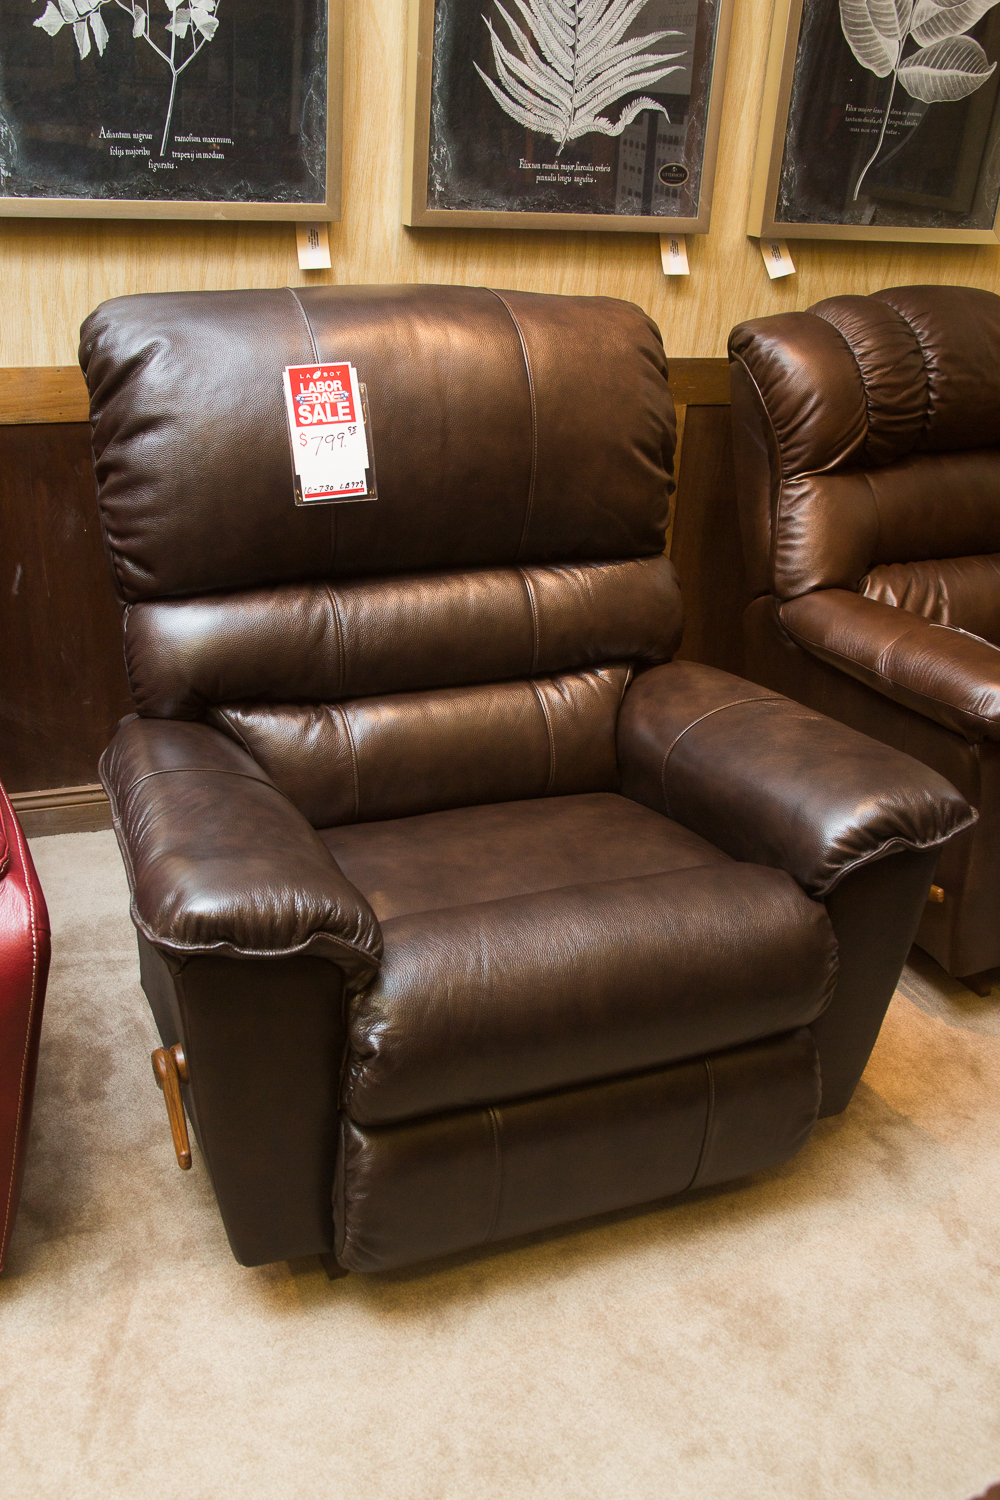 """Vince"" ""Big Man"" chair shown in brown leather"